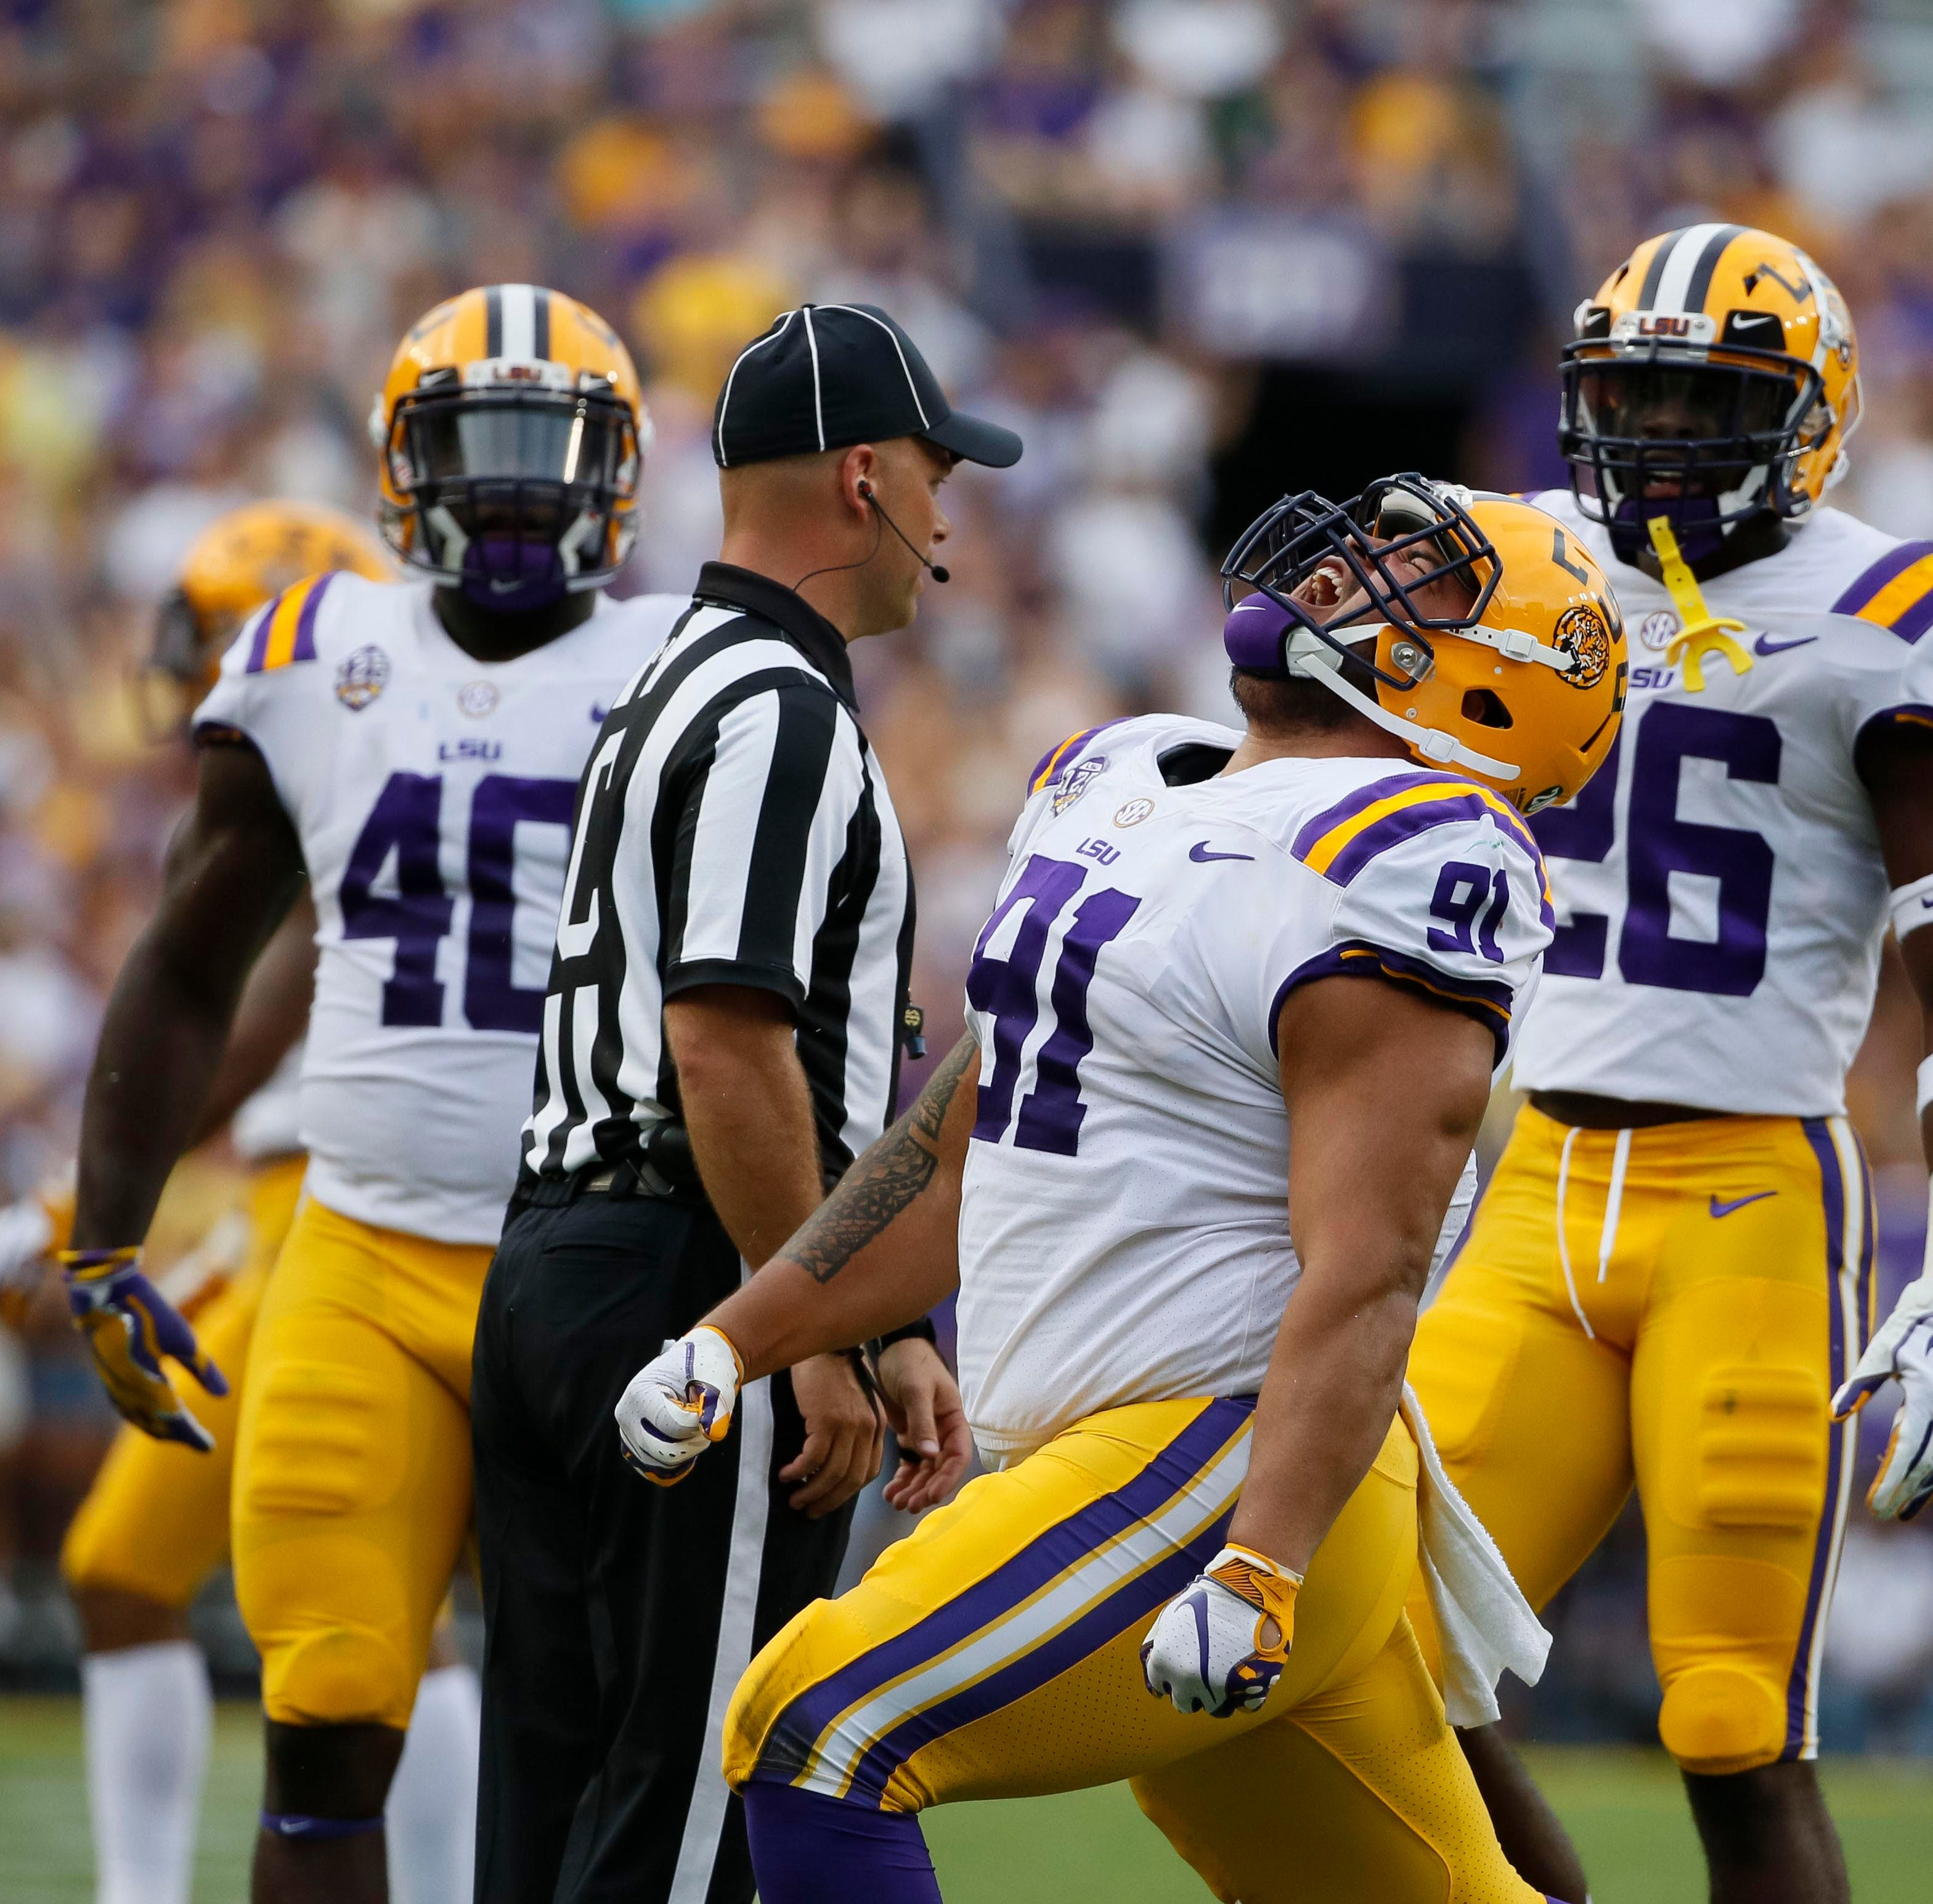 'Just stuff him,' was the game plan, said LSU nose tackle Breiden Fehoko on key 4th down